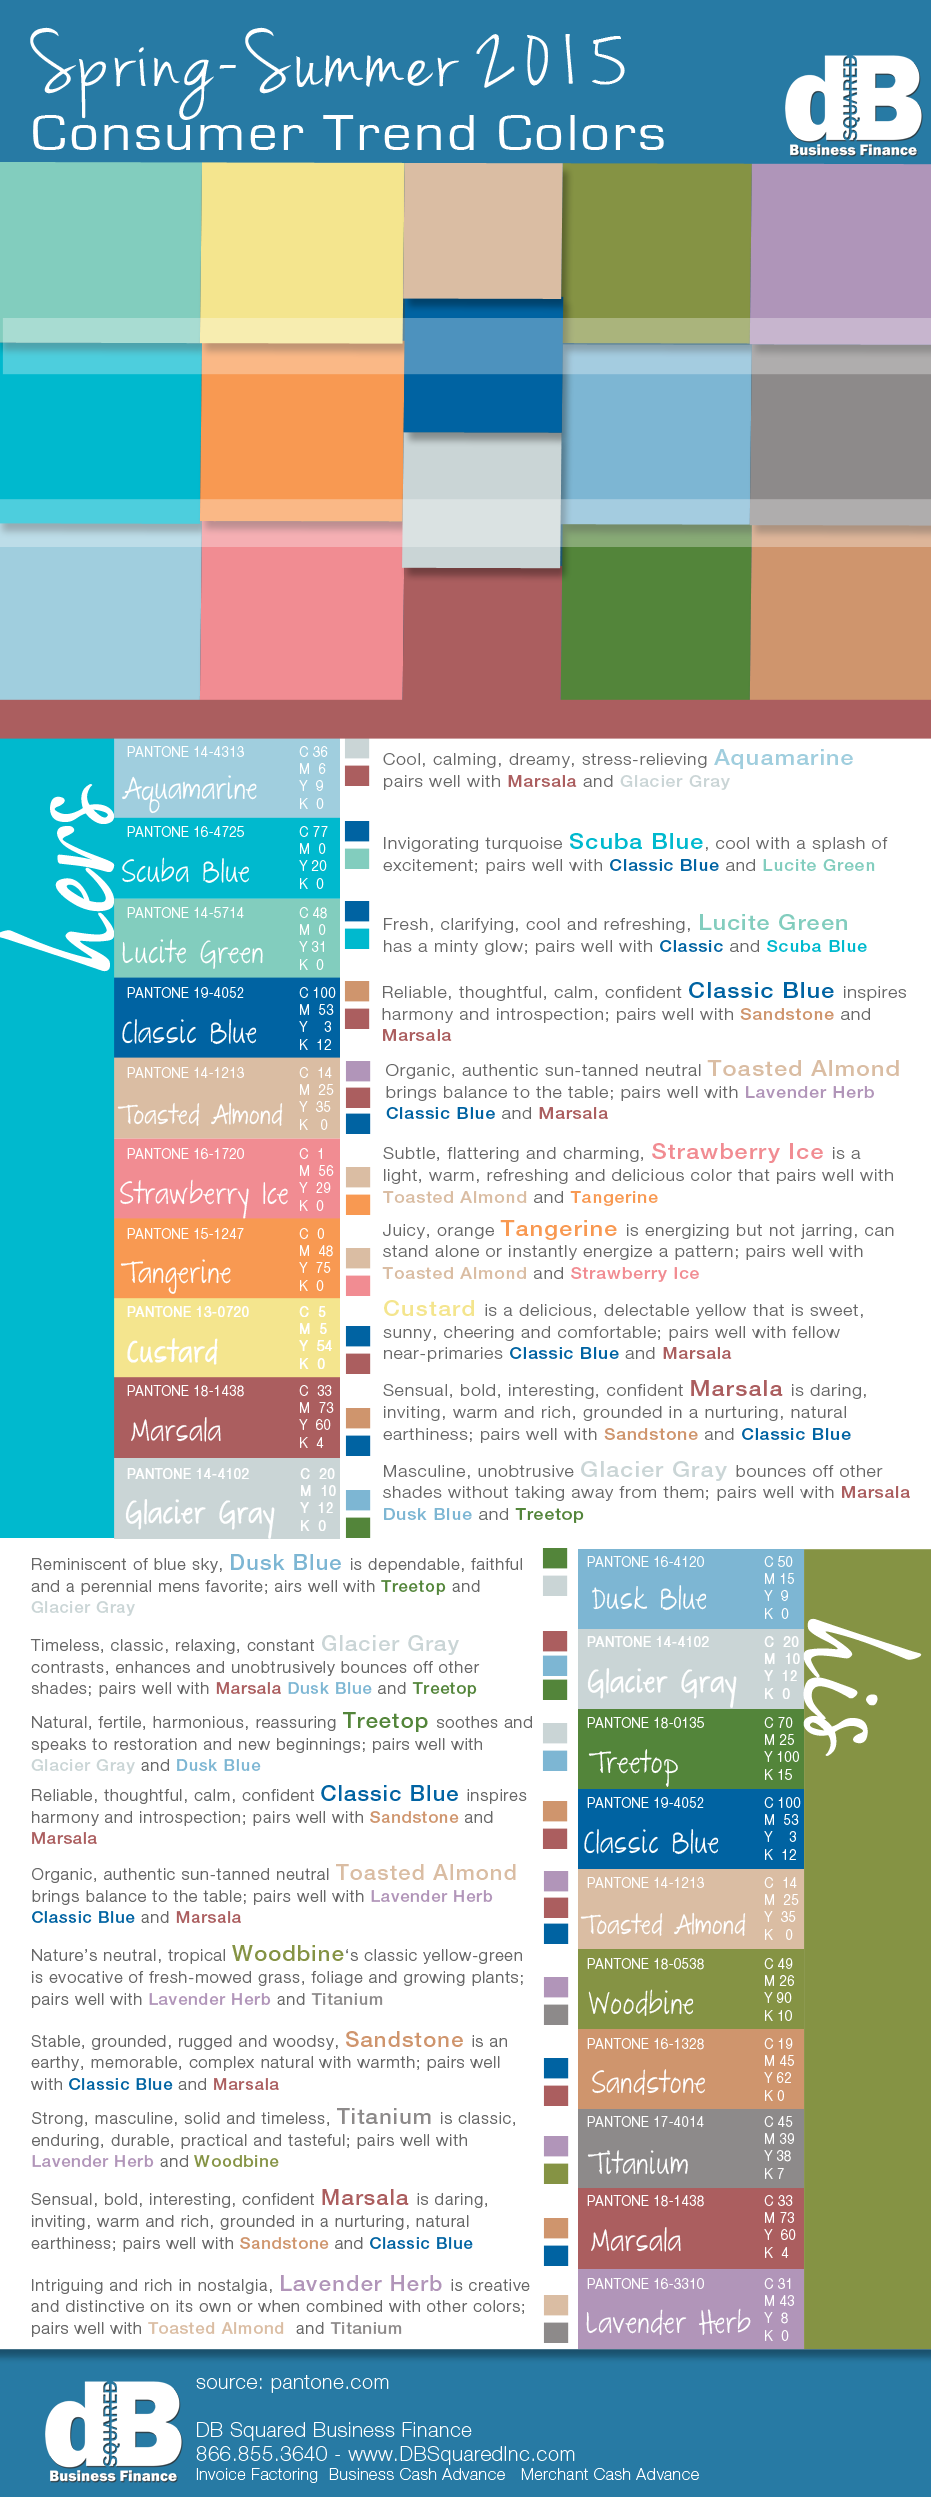 Infographic for Real estate marketing ideas with 2015 Pantone colors